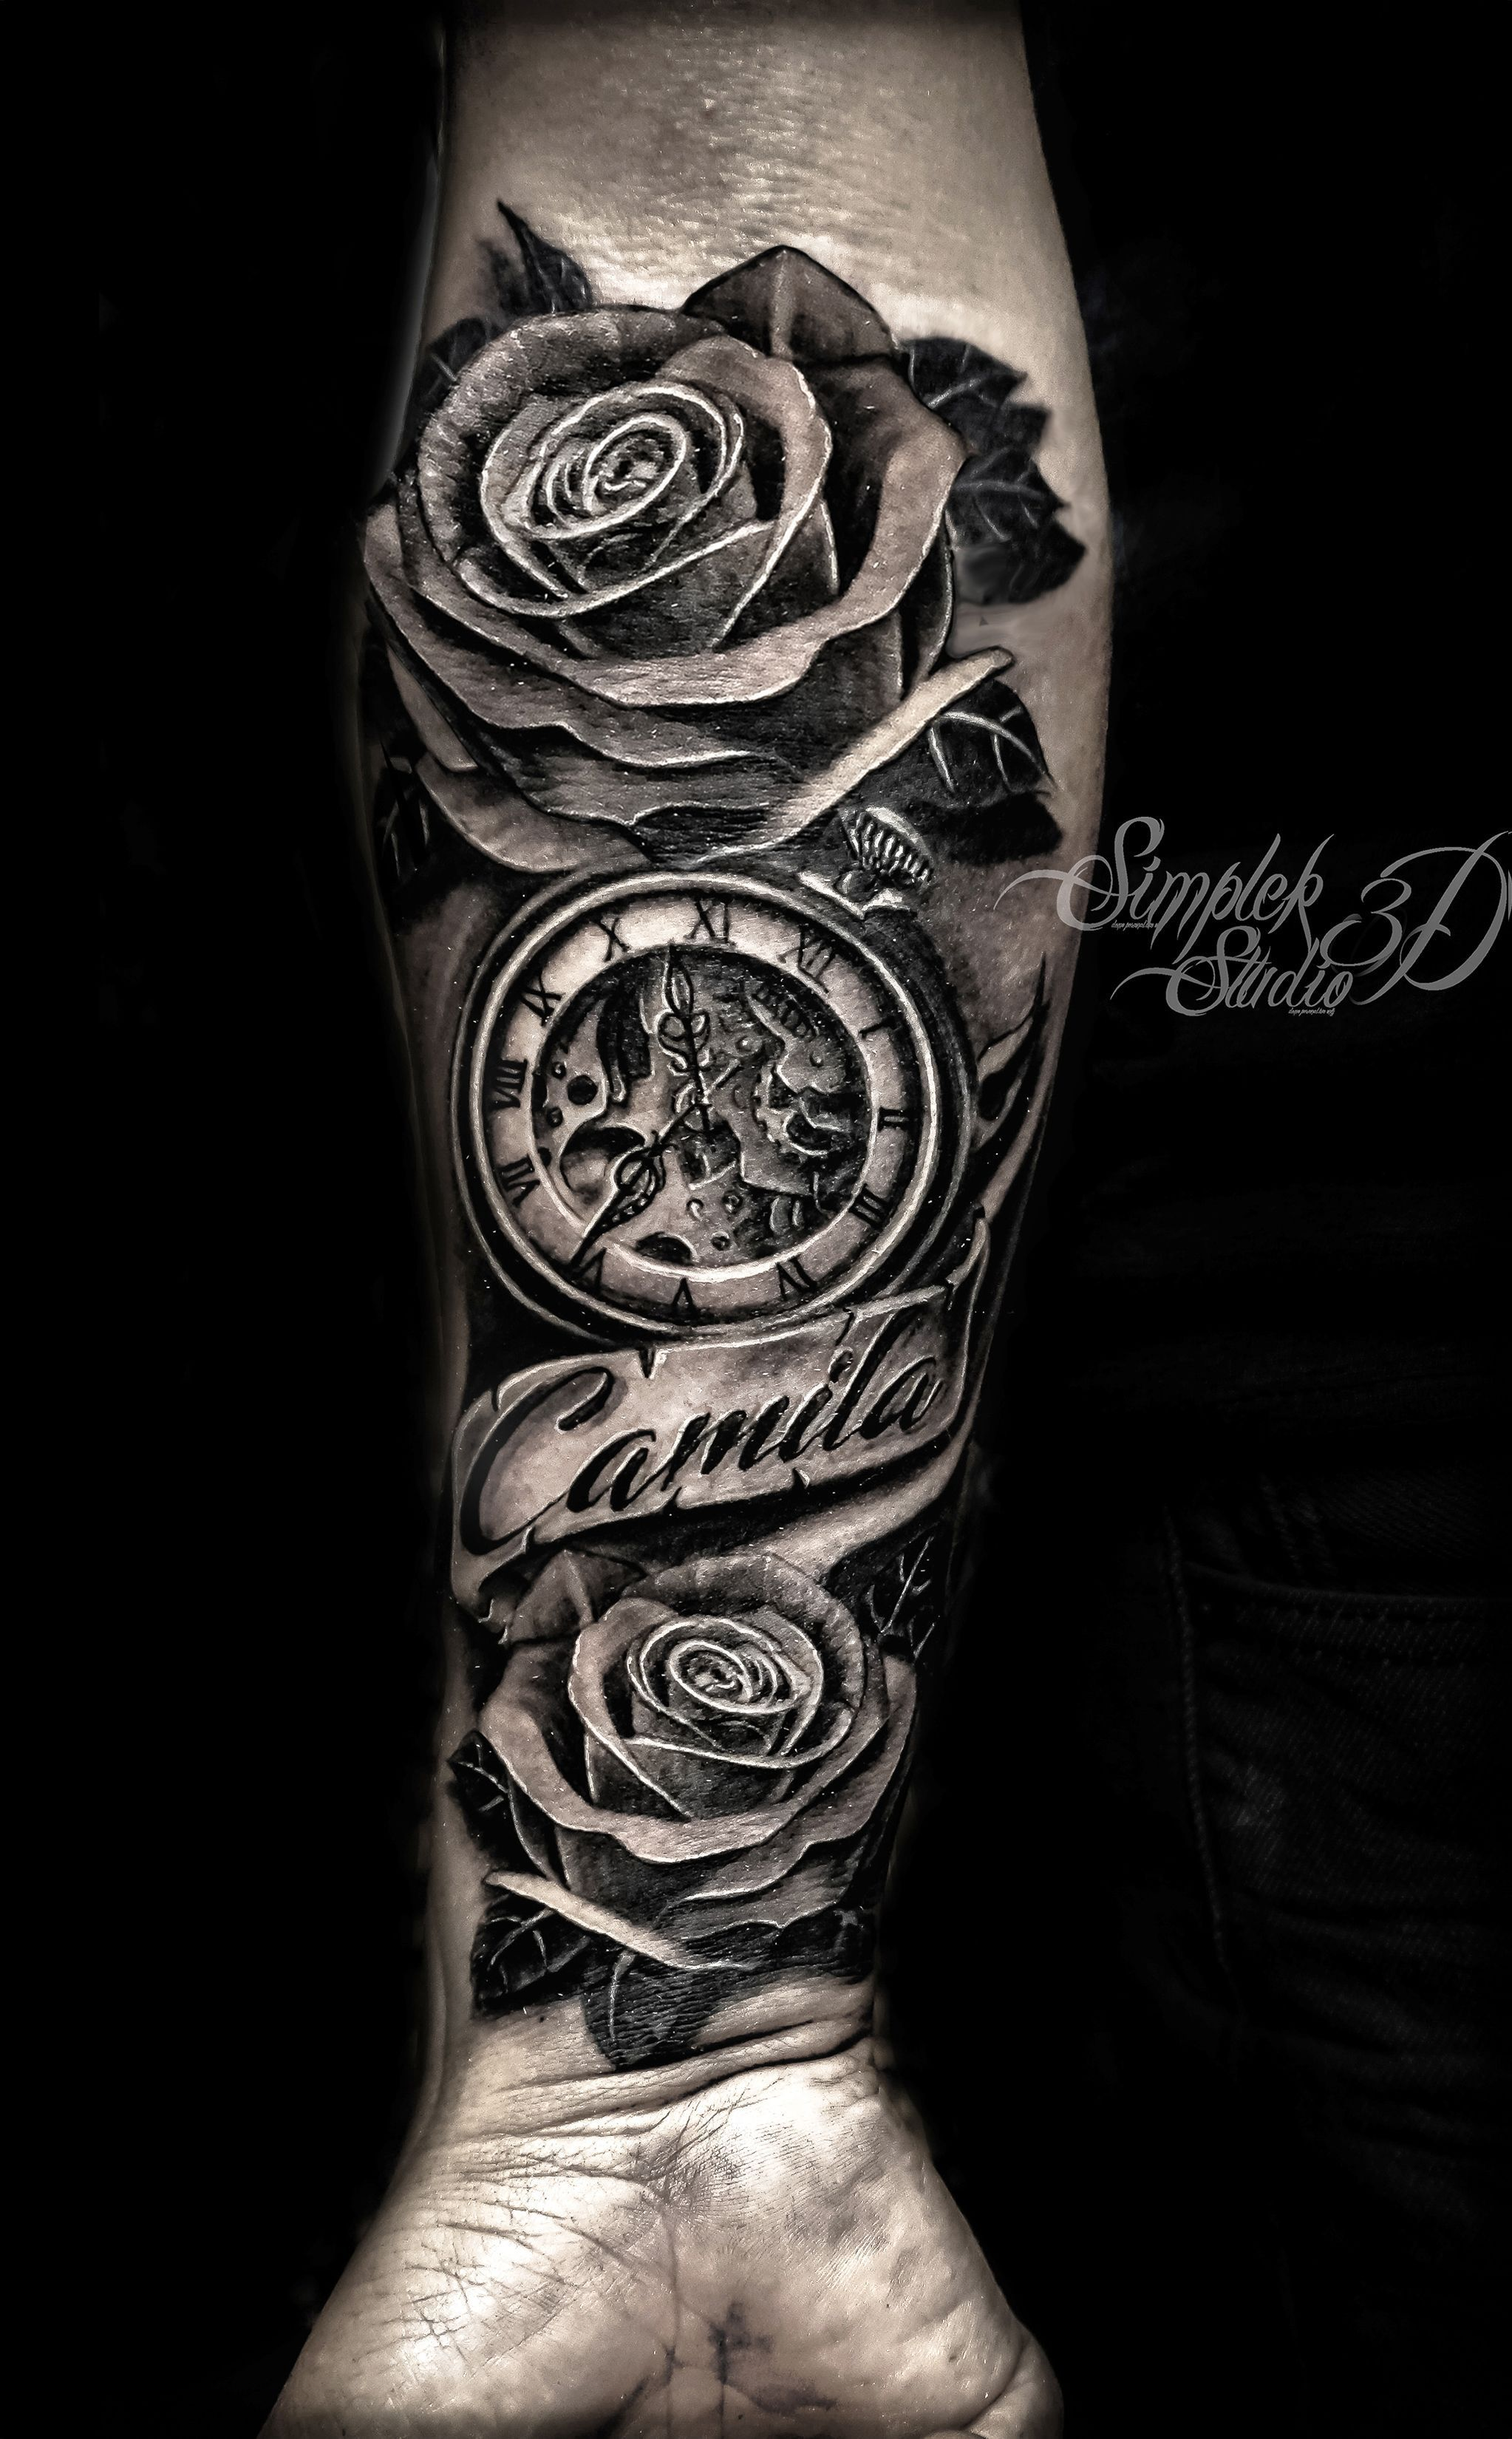 Tattoos Namen Kinder In 2020 Rose Tattoos For Men Clock And Rose Tattoo Rose Tattoos